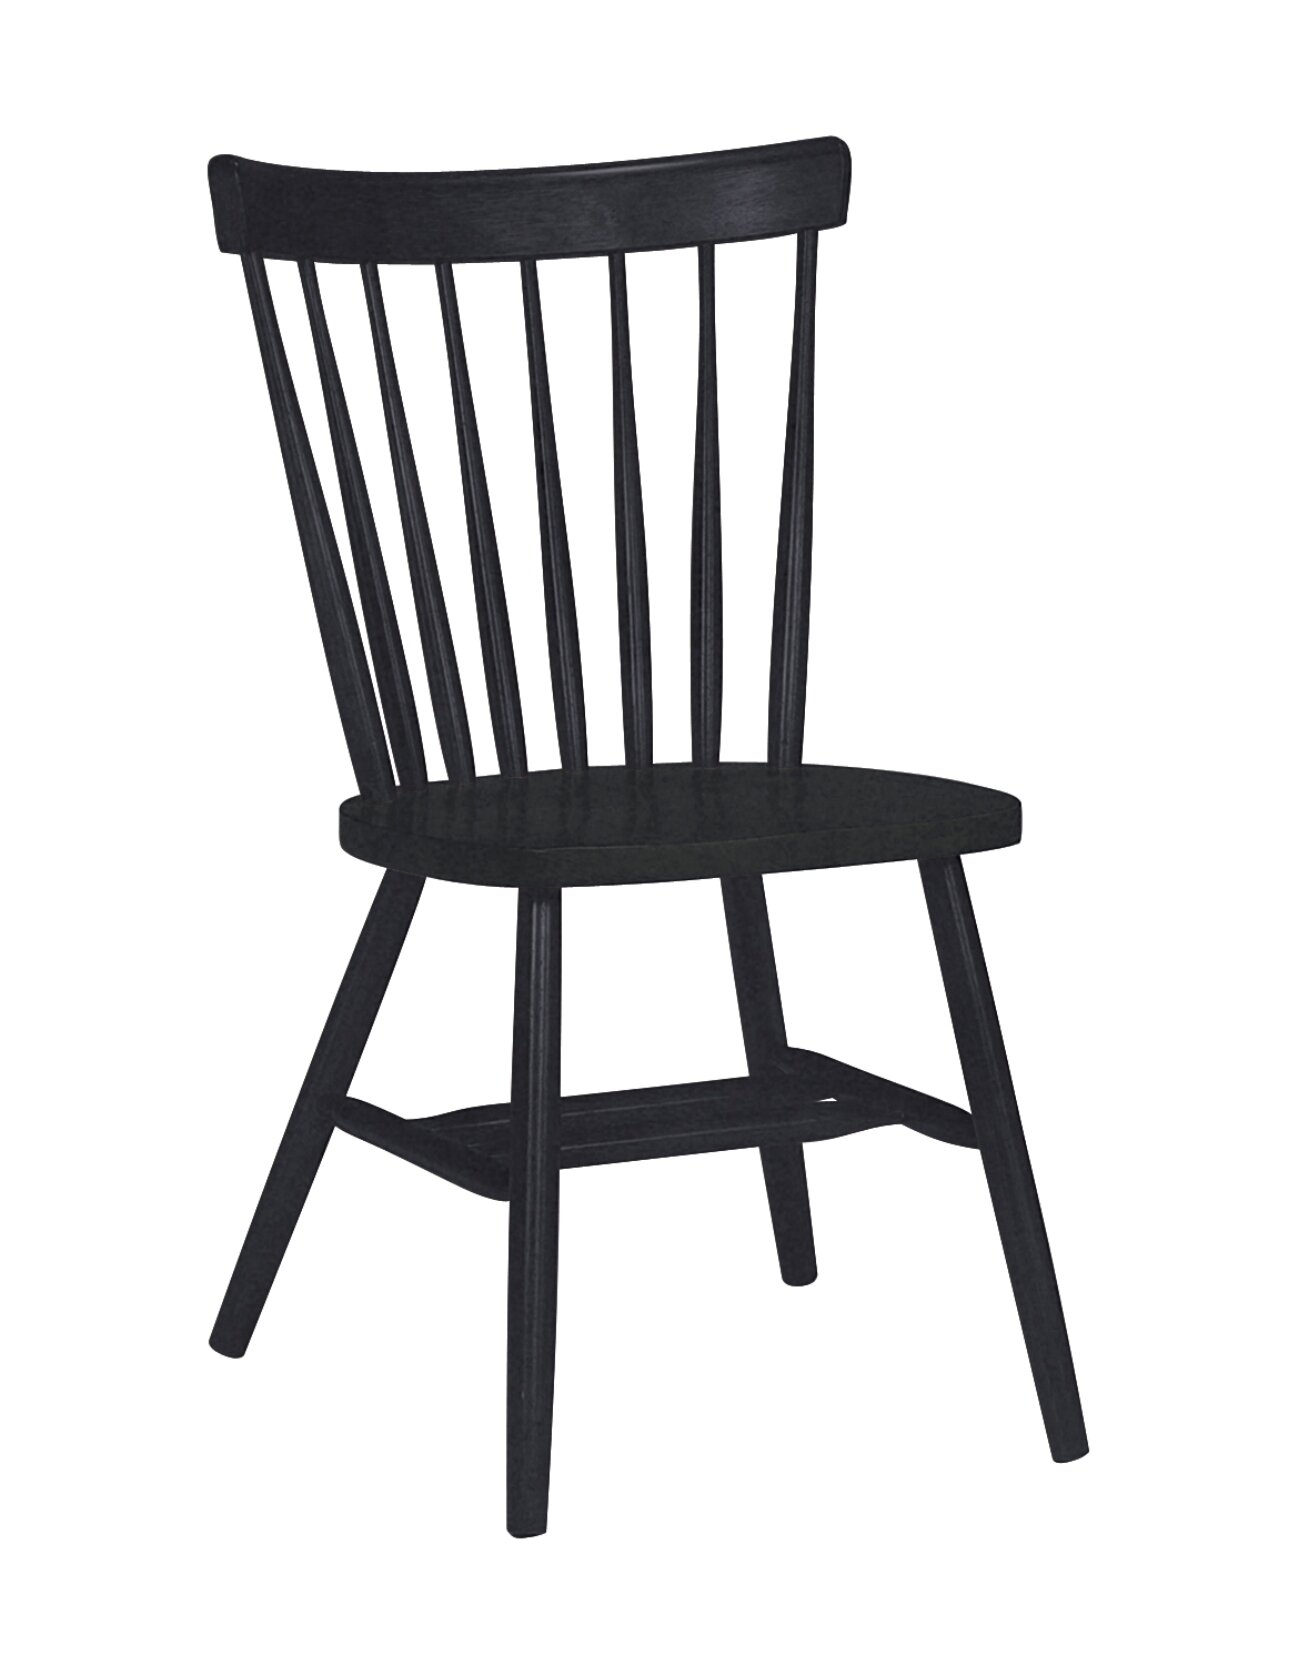 August Grove Sofia Arrowback Solid Wood Dining Chair U0026 Reviews | Wayfair